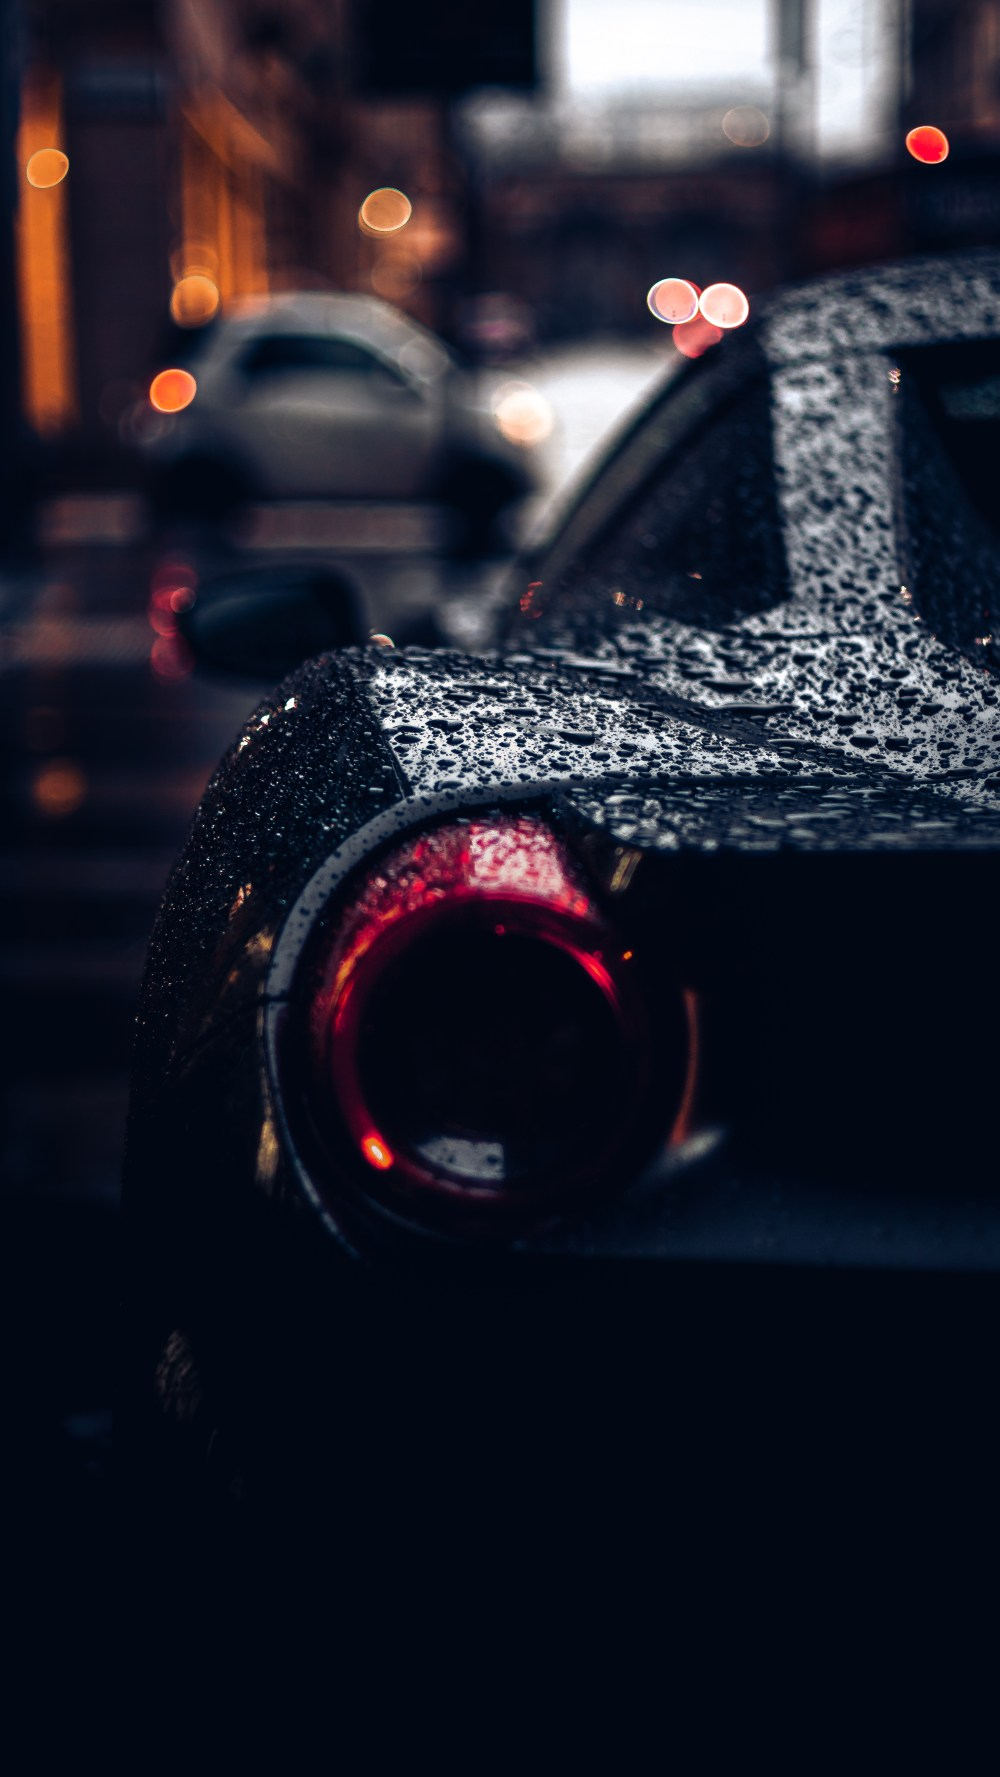 We have got 13 images about iphone car wallpaper 4k images, photos, pictures, backgrounds, and more. Iphone Car Pictures Download Free Images On Unsplash